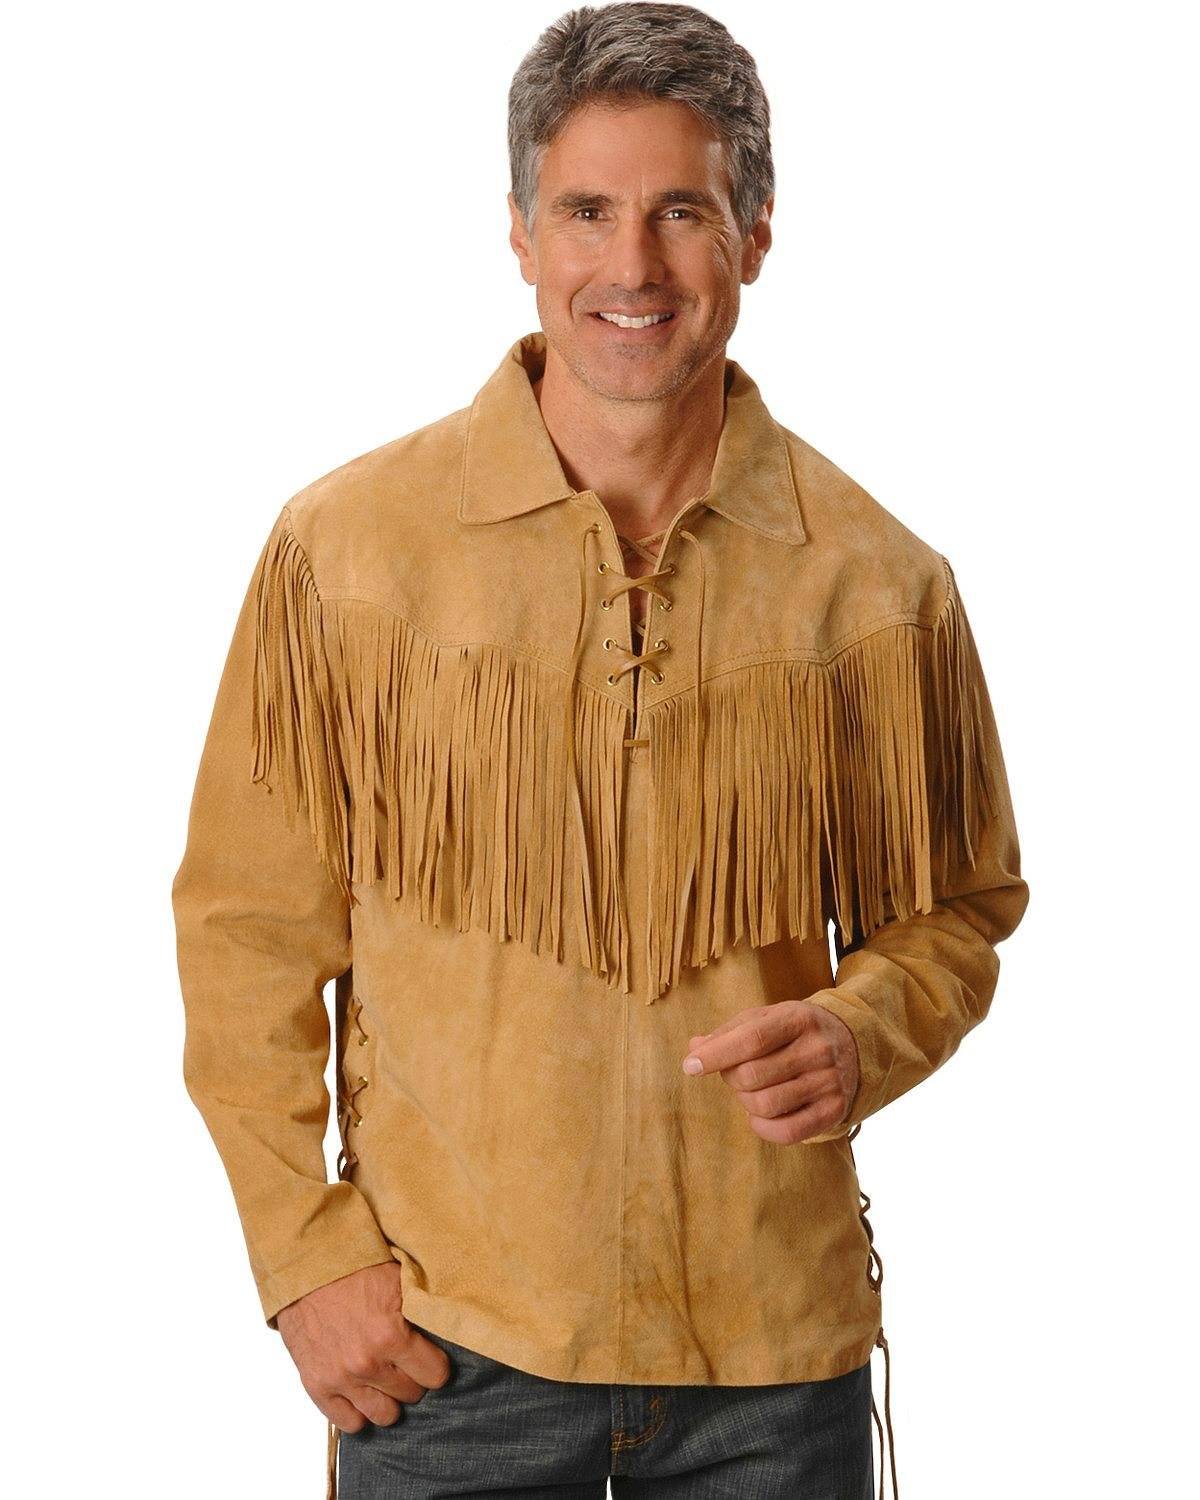 Scully Men's Fringed Boar Suede Leather Shirt Tan Medium